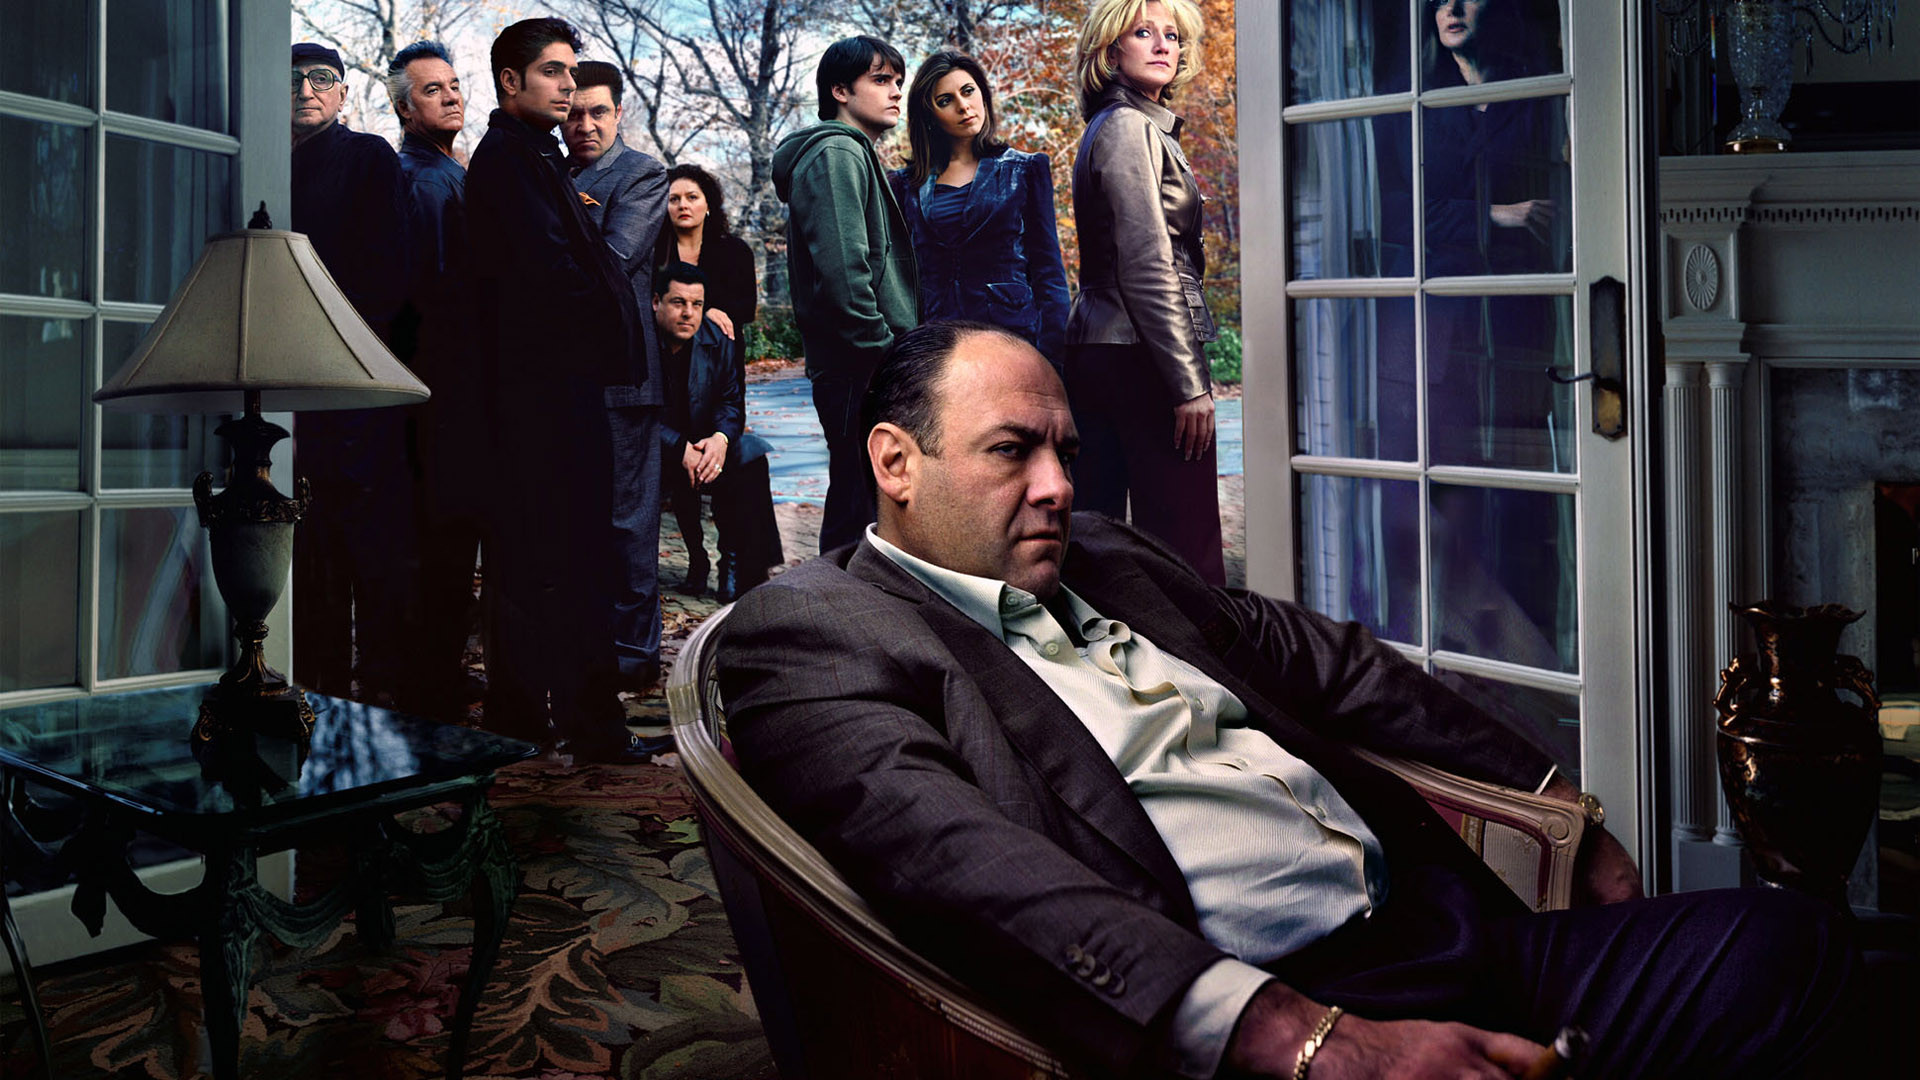 The sopranos hd wallpaper background image 1920x1080 - Sopranos wallpaper ...